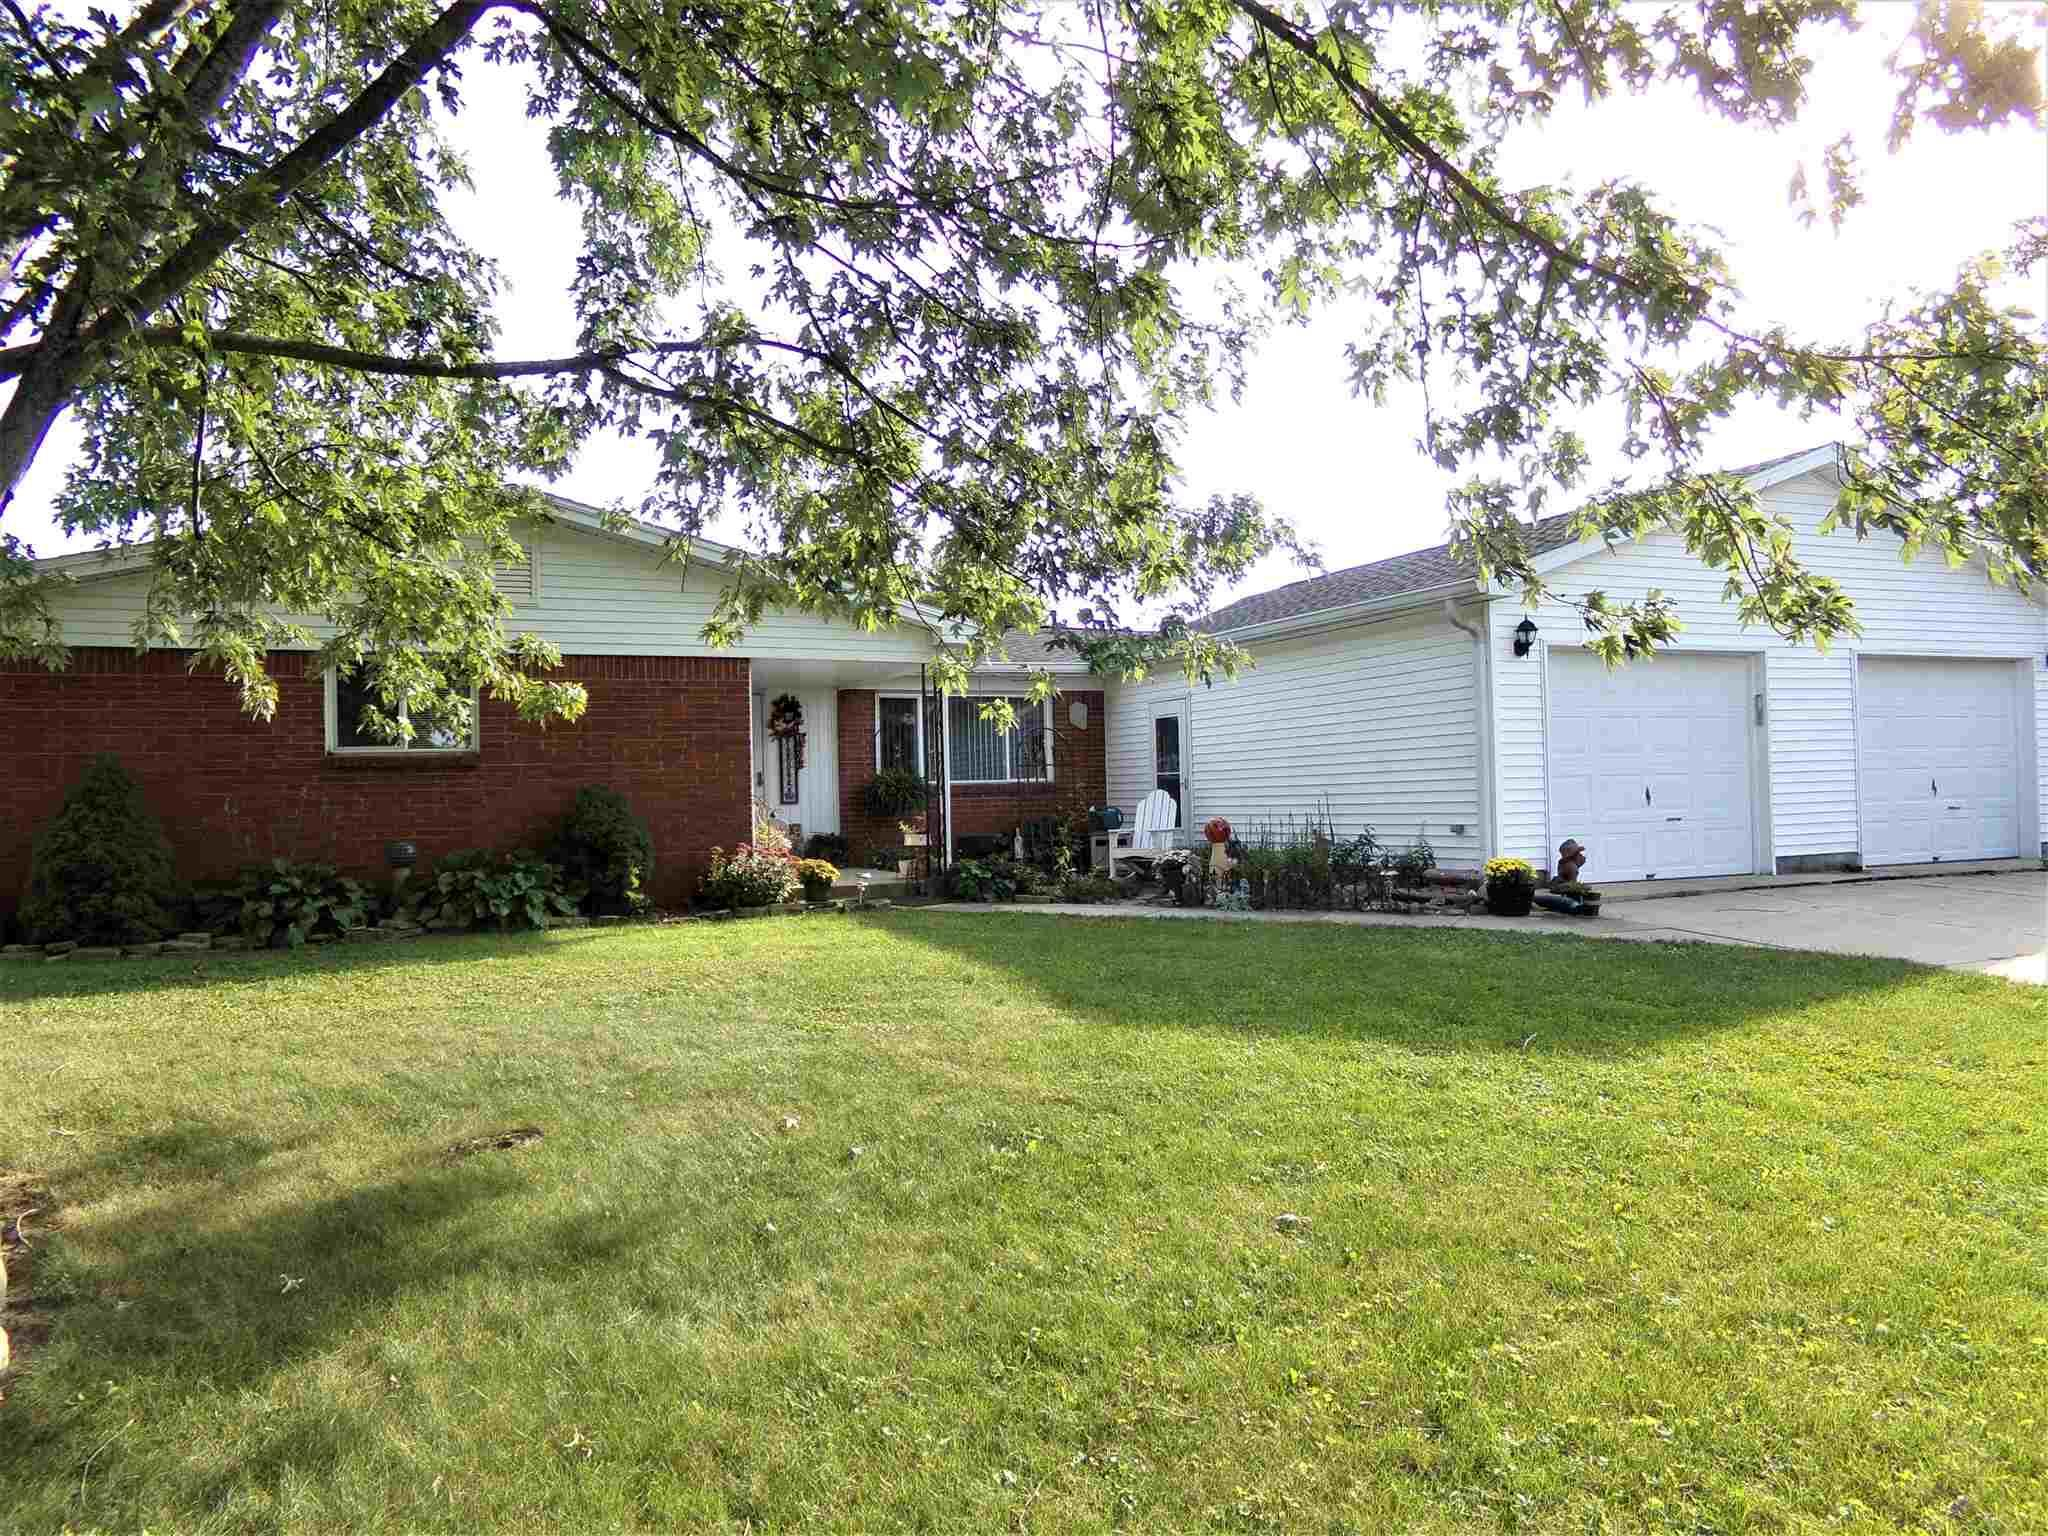 727 E 600 north, Kokomo, IN 46901